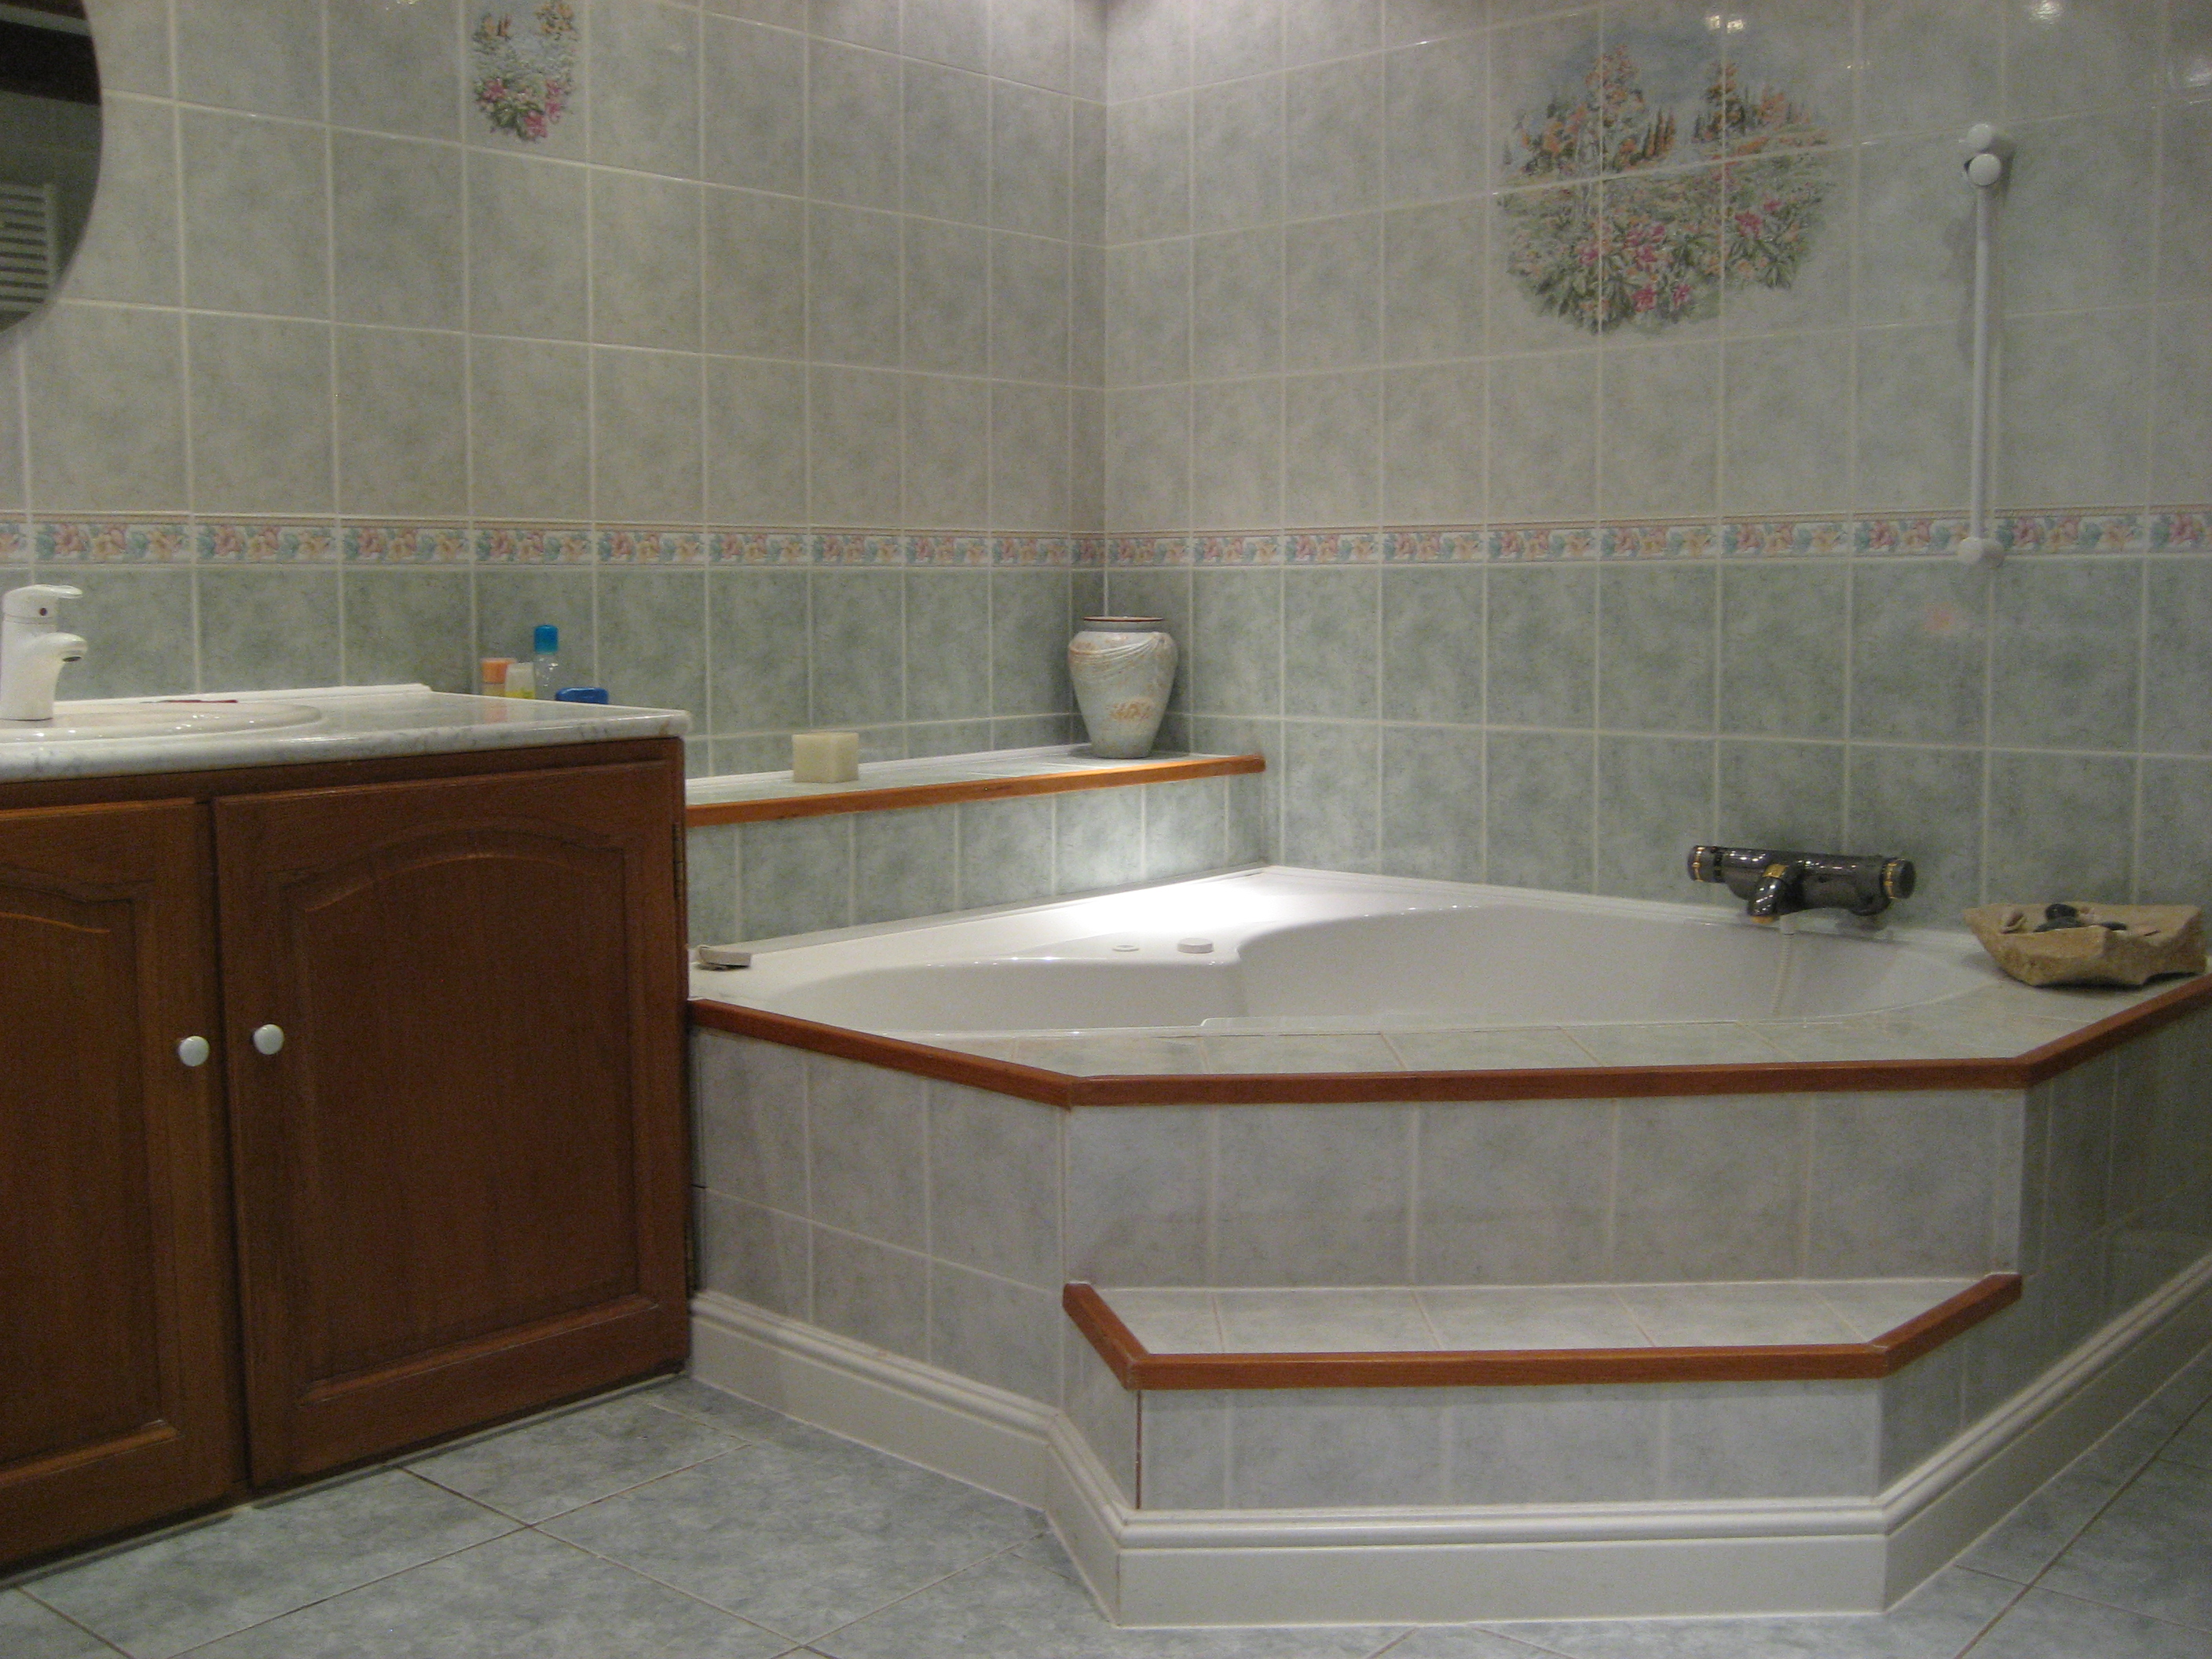 The Bathroom